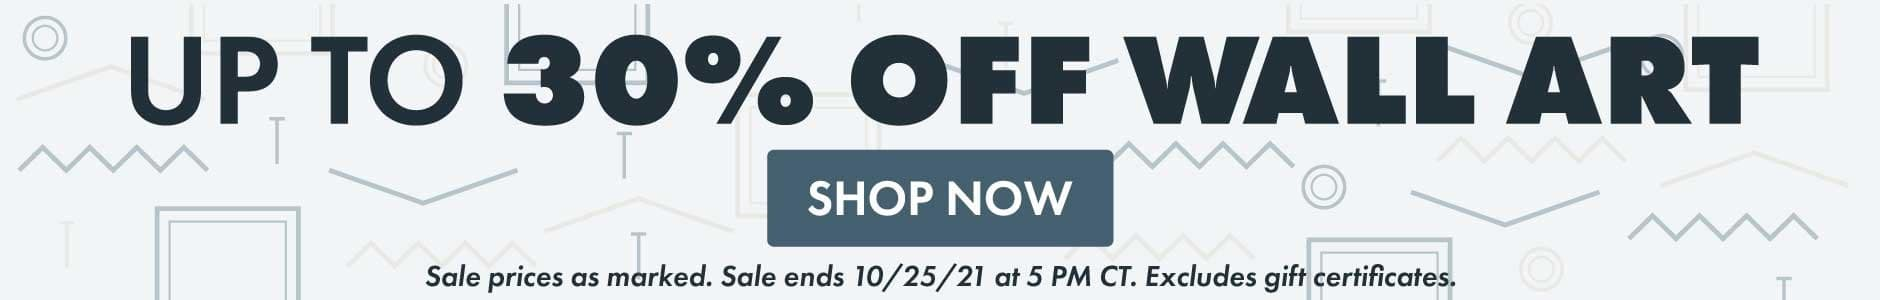 Up to 30% Off Wall Art